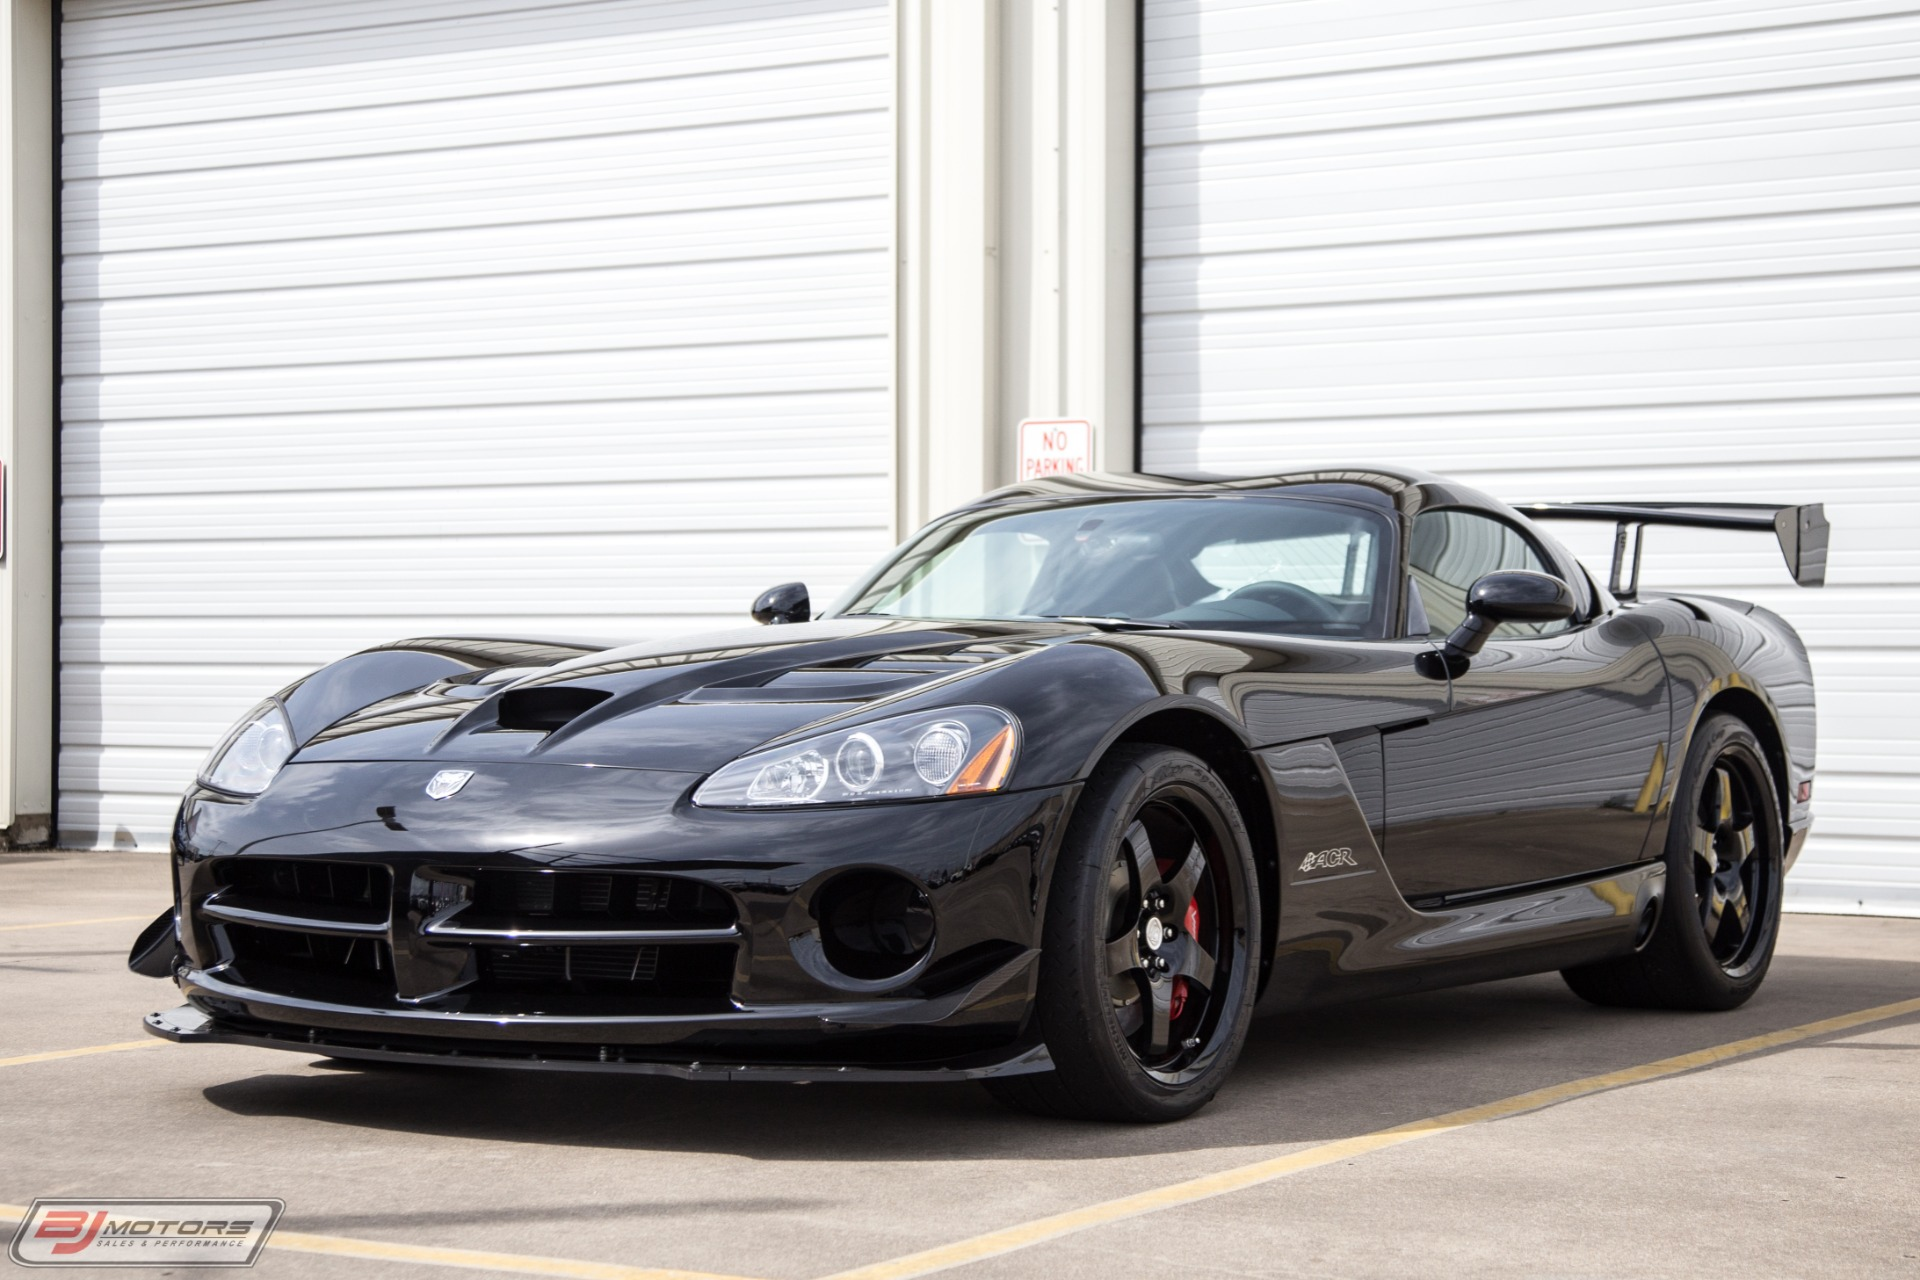 Used-2009-Dodge-Viper-ACR-Only-14-Miles